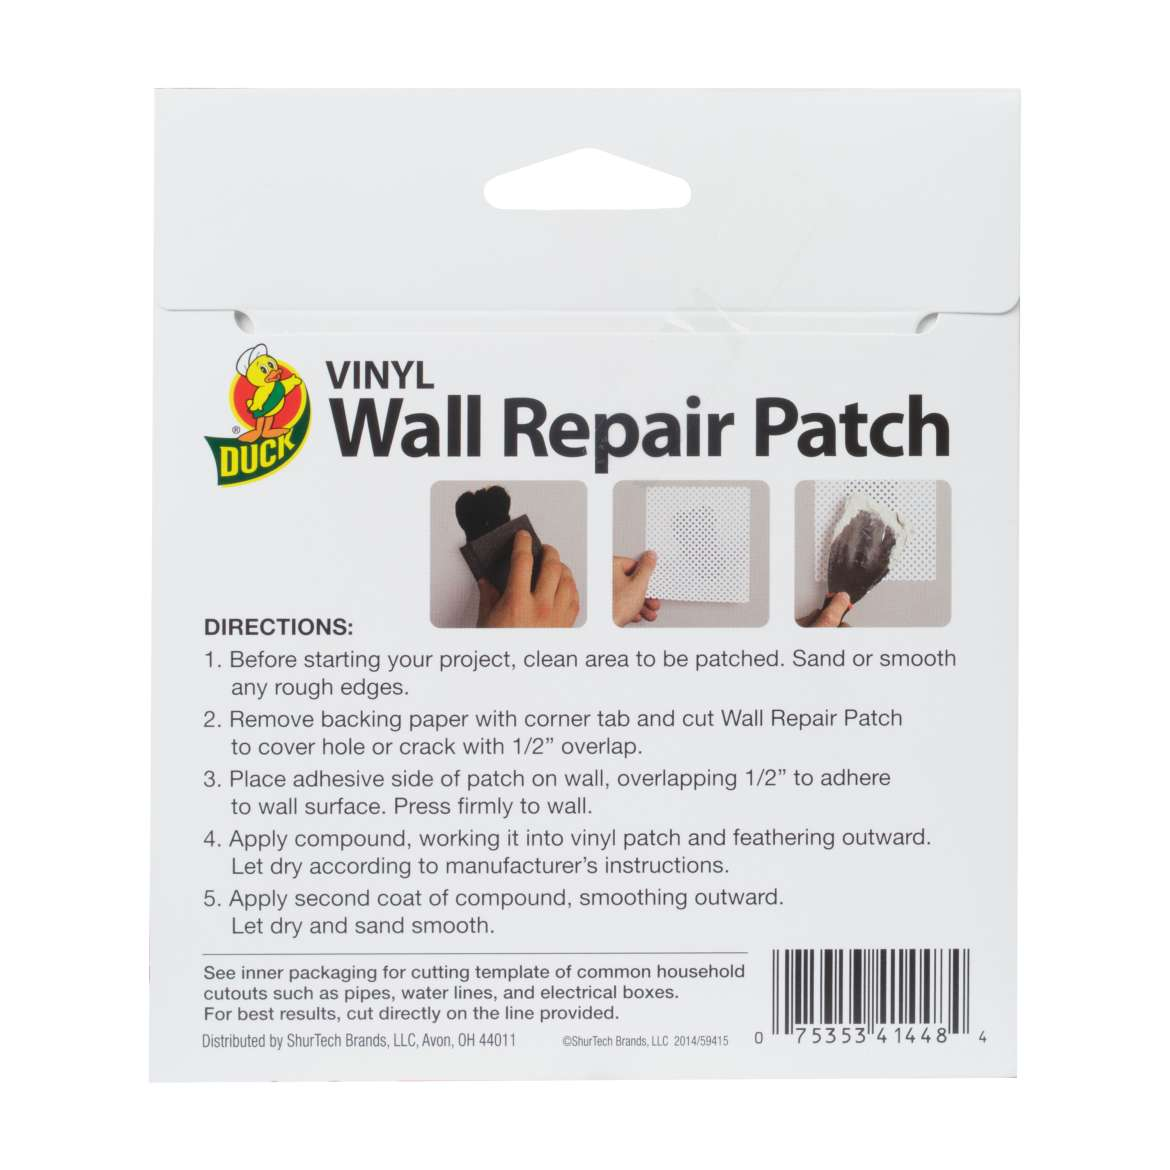 Vinyl Wall Repair Patch